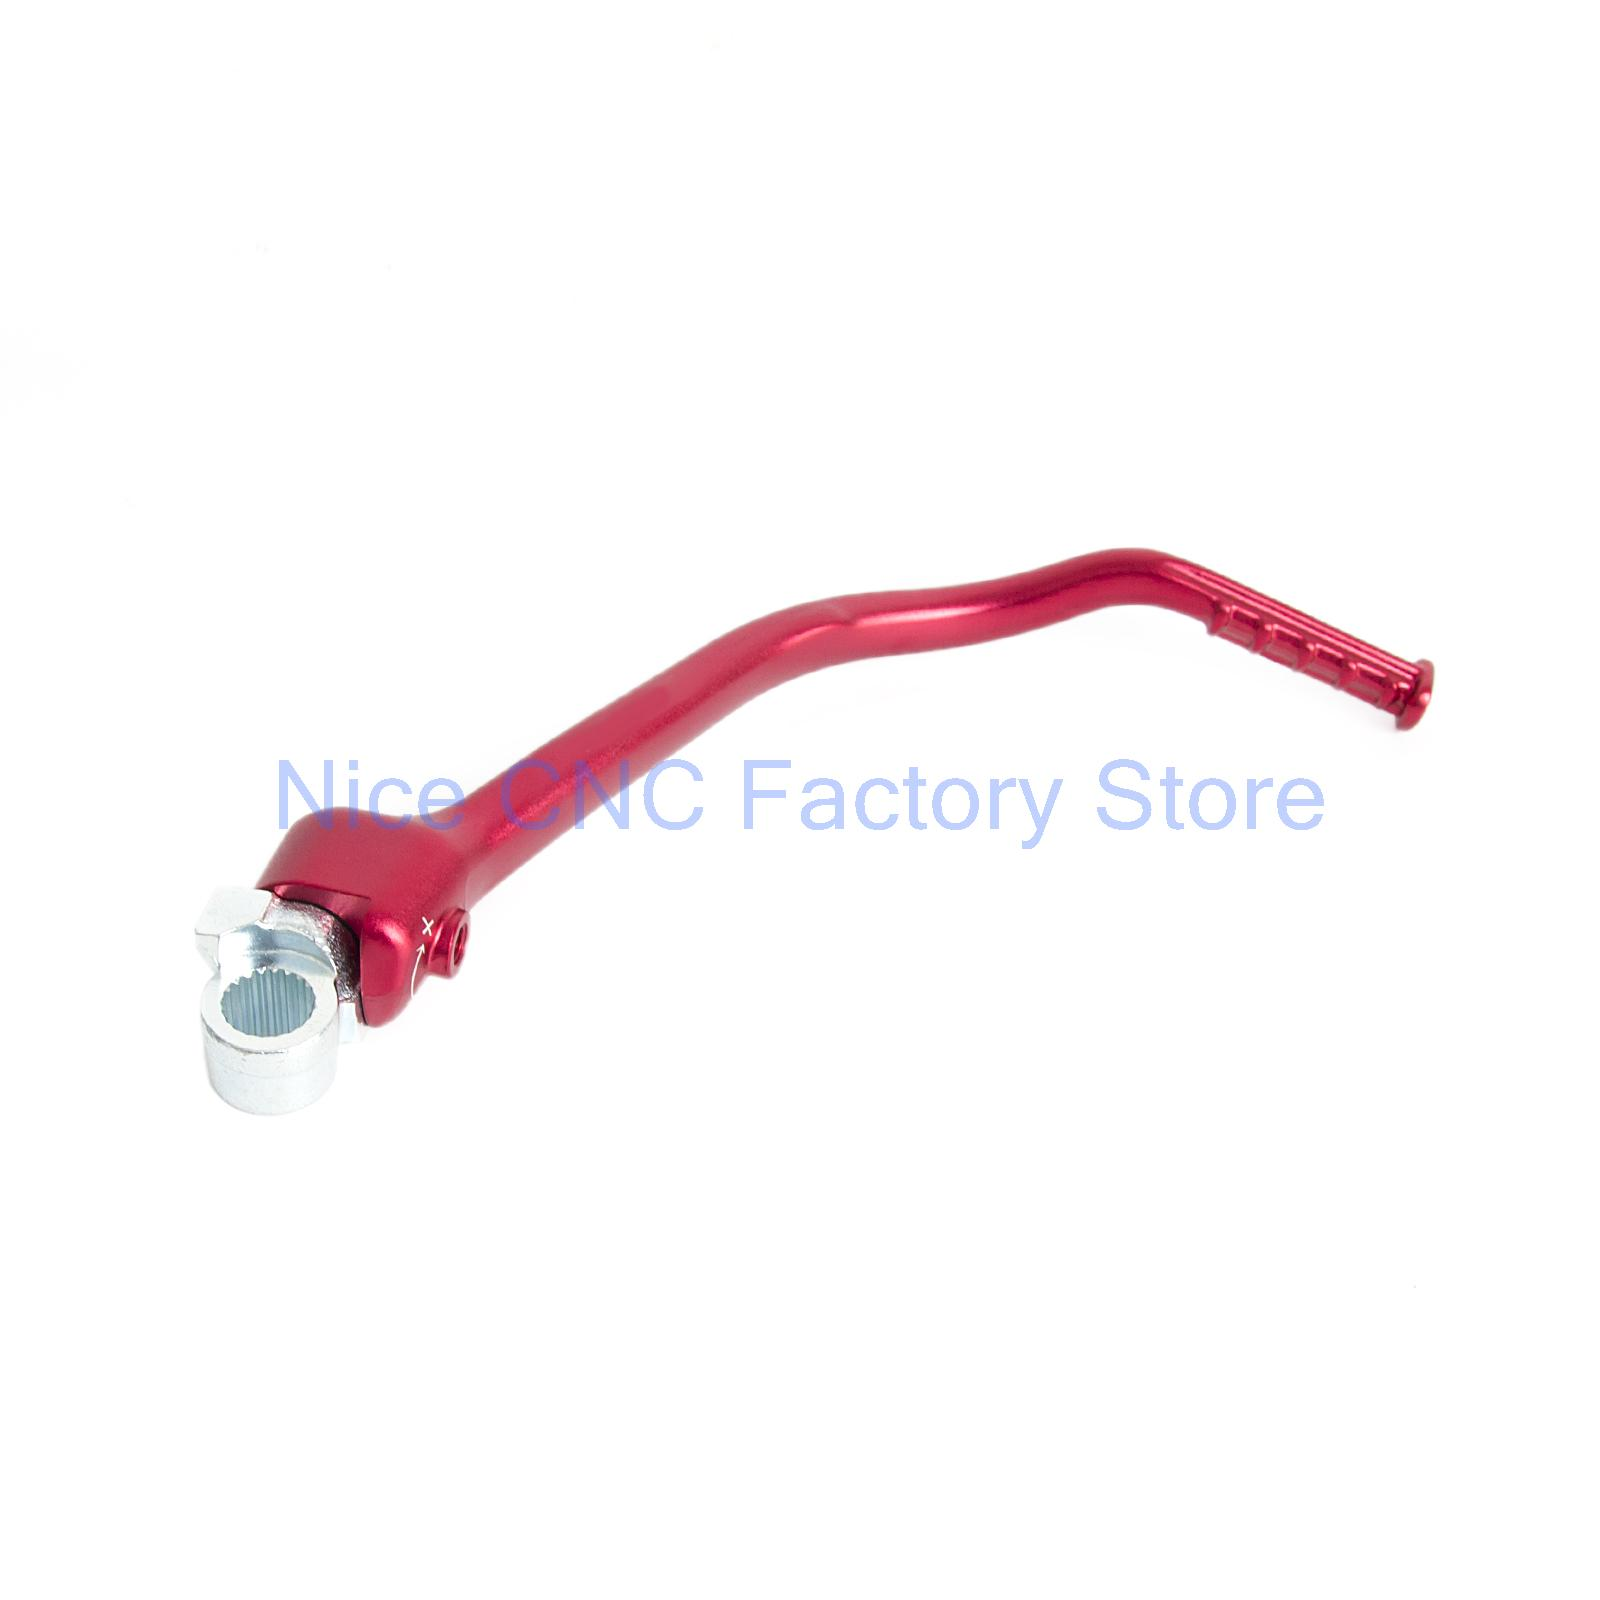 Anodized Red Forged Kick Start Lever for Honda CRF450R 2012 - 2016 2013 2014 2015 CRF250 R CRF 250R NEW for honda crf 250r 450r 2004 2006 crf 250x 450x 2004 2015 red motorcycle dirt bike off road cnc pivot brake clutch lever